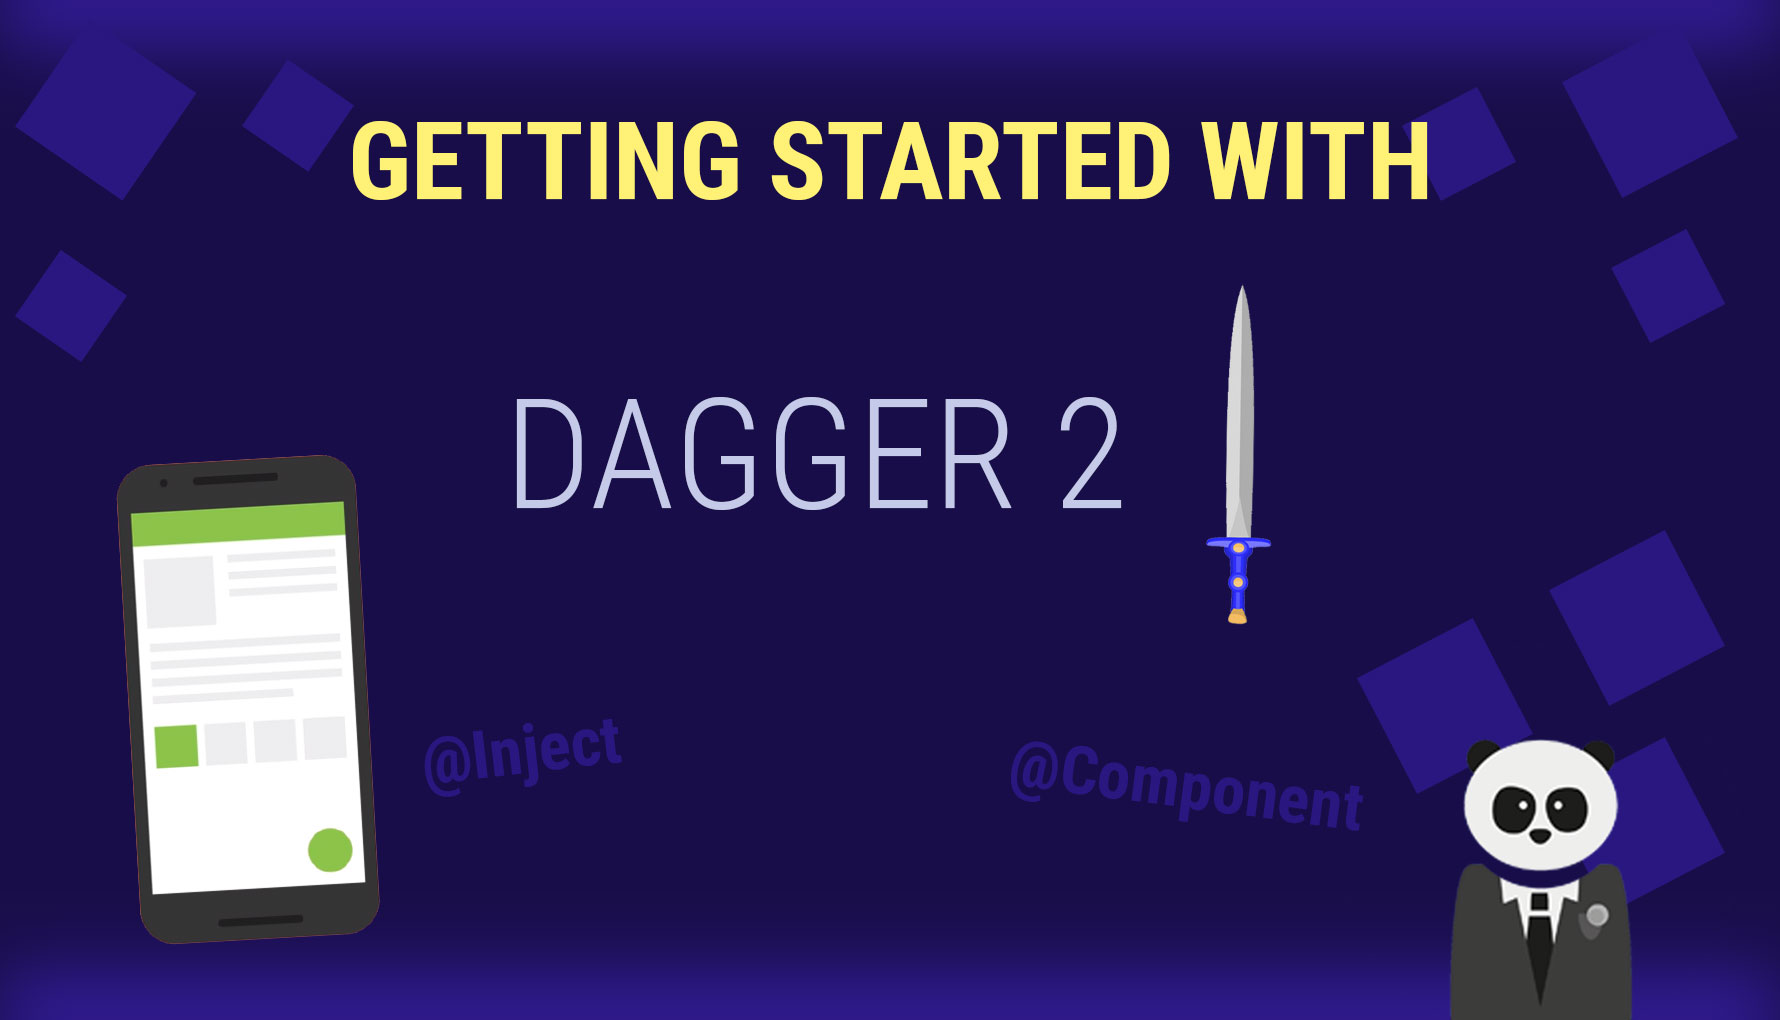 Getting Started with Dagger 2